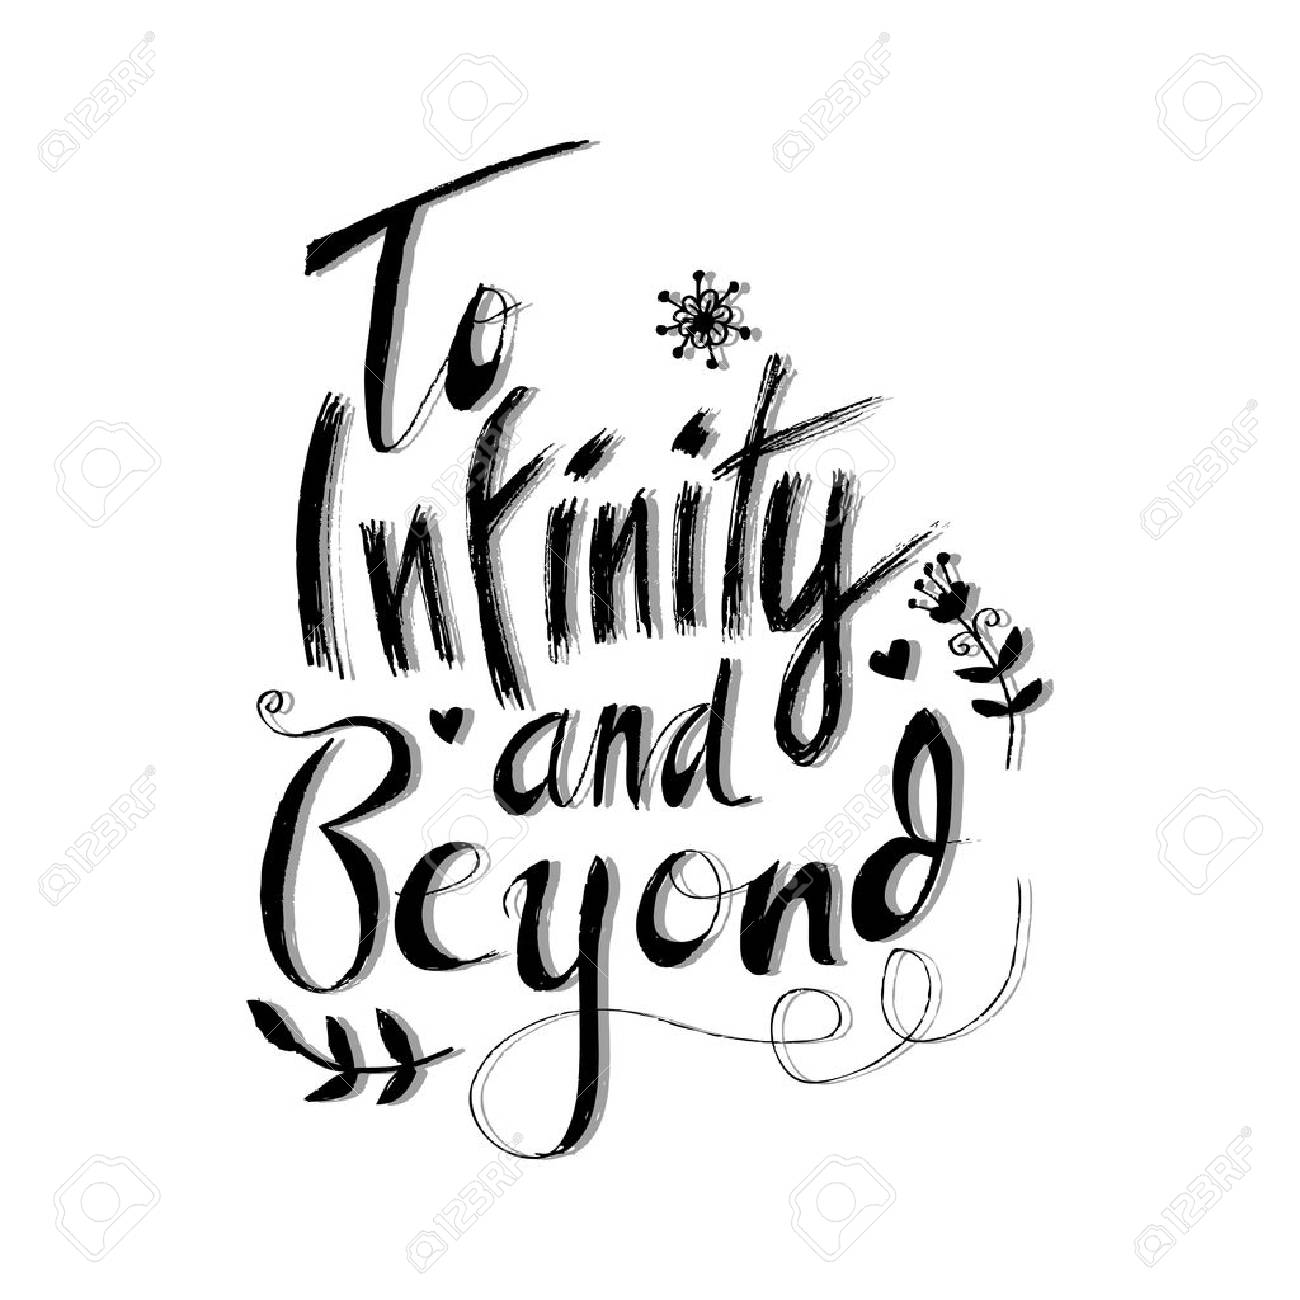 Infinity and beyond clipart jpg library To infinity and beyond clipart » Clipart Station jpg library